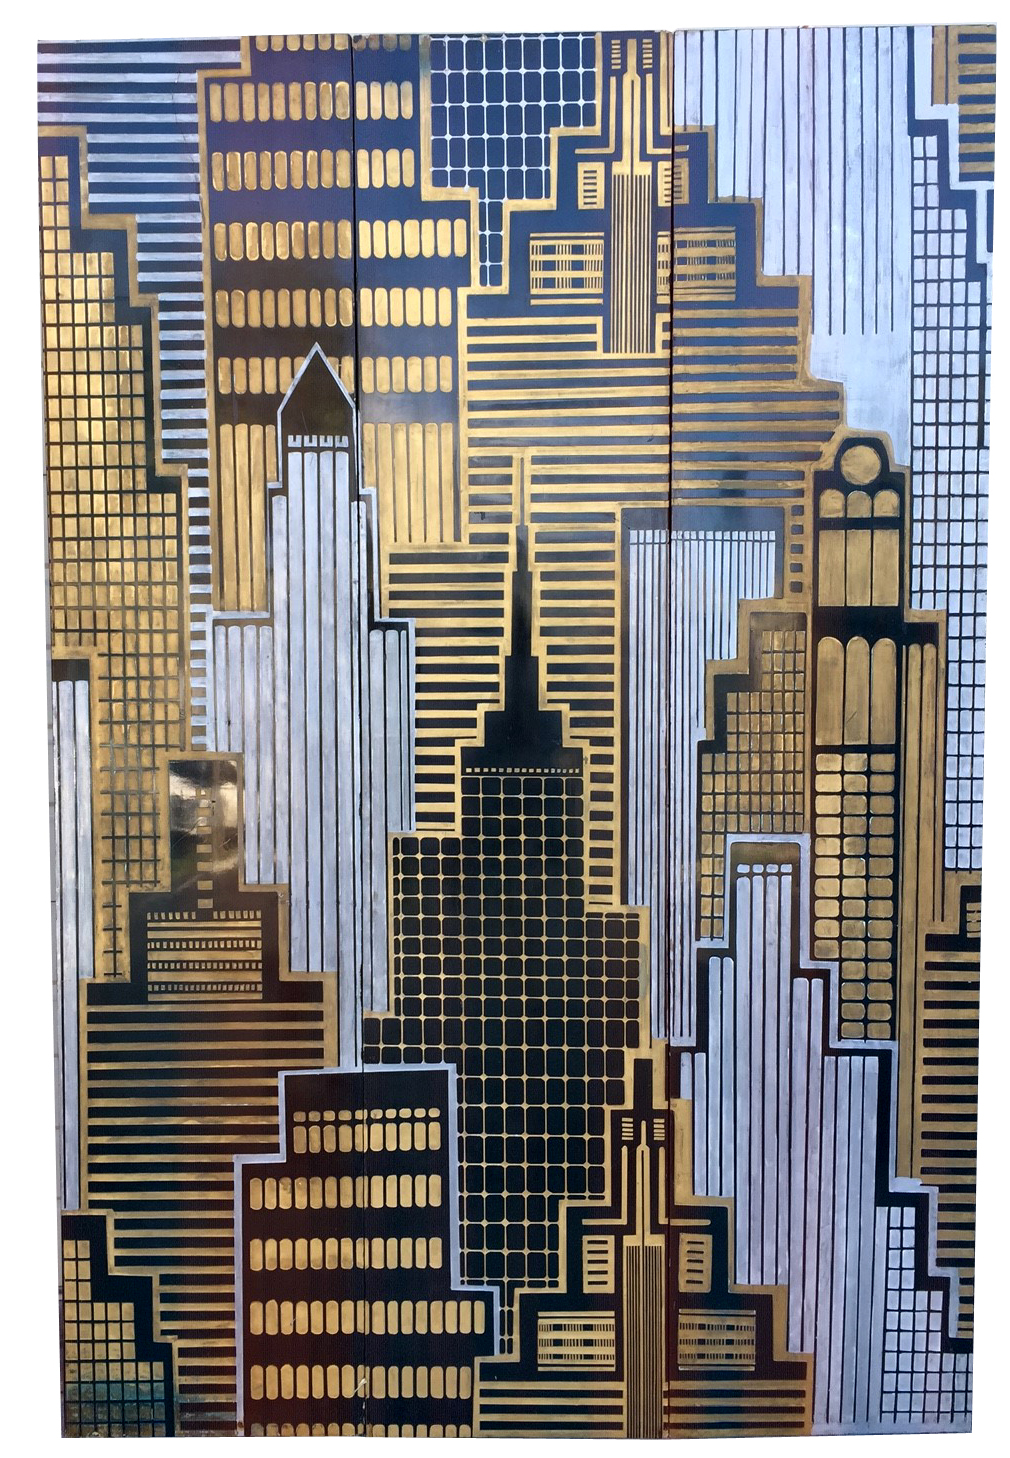 Skyscraper Cityscape Three Panel Screen or Wall Sculpture